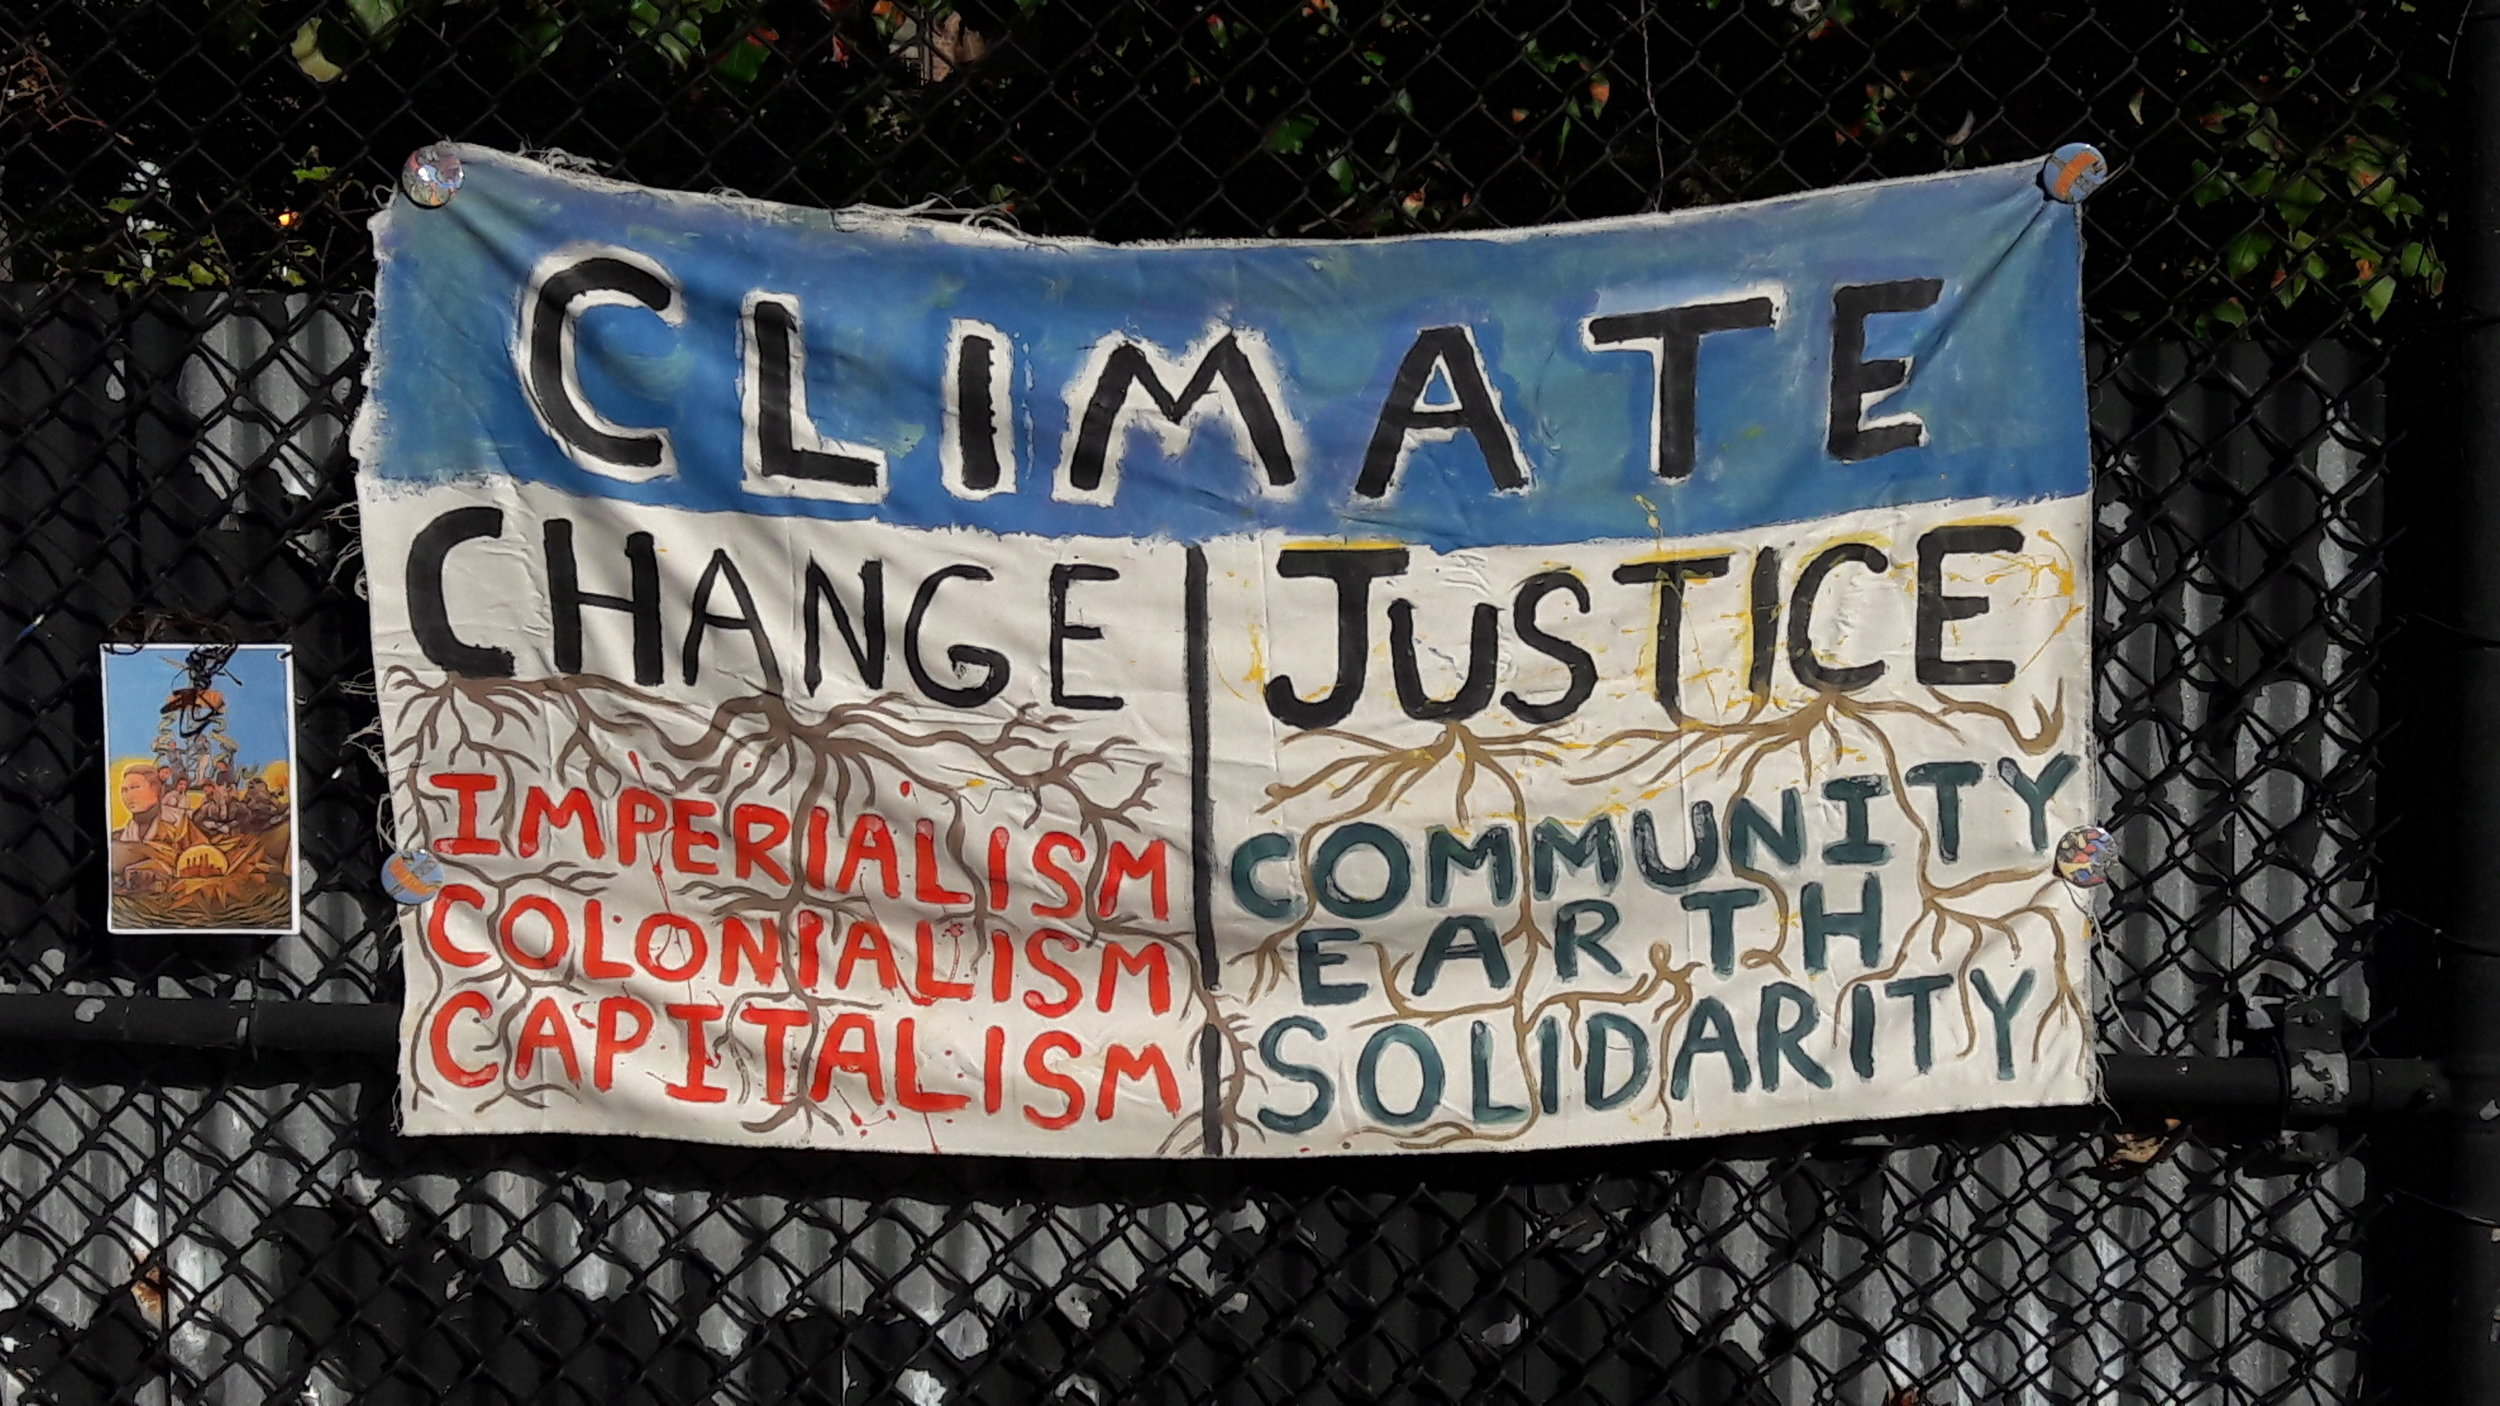 Climate Ribbon @Sandy5.Climate change justice.10-28-17 (21).jpg